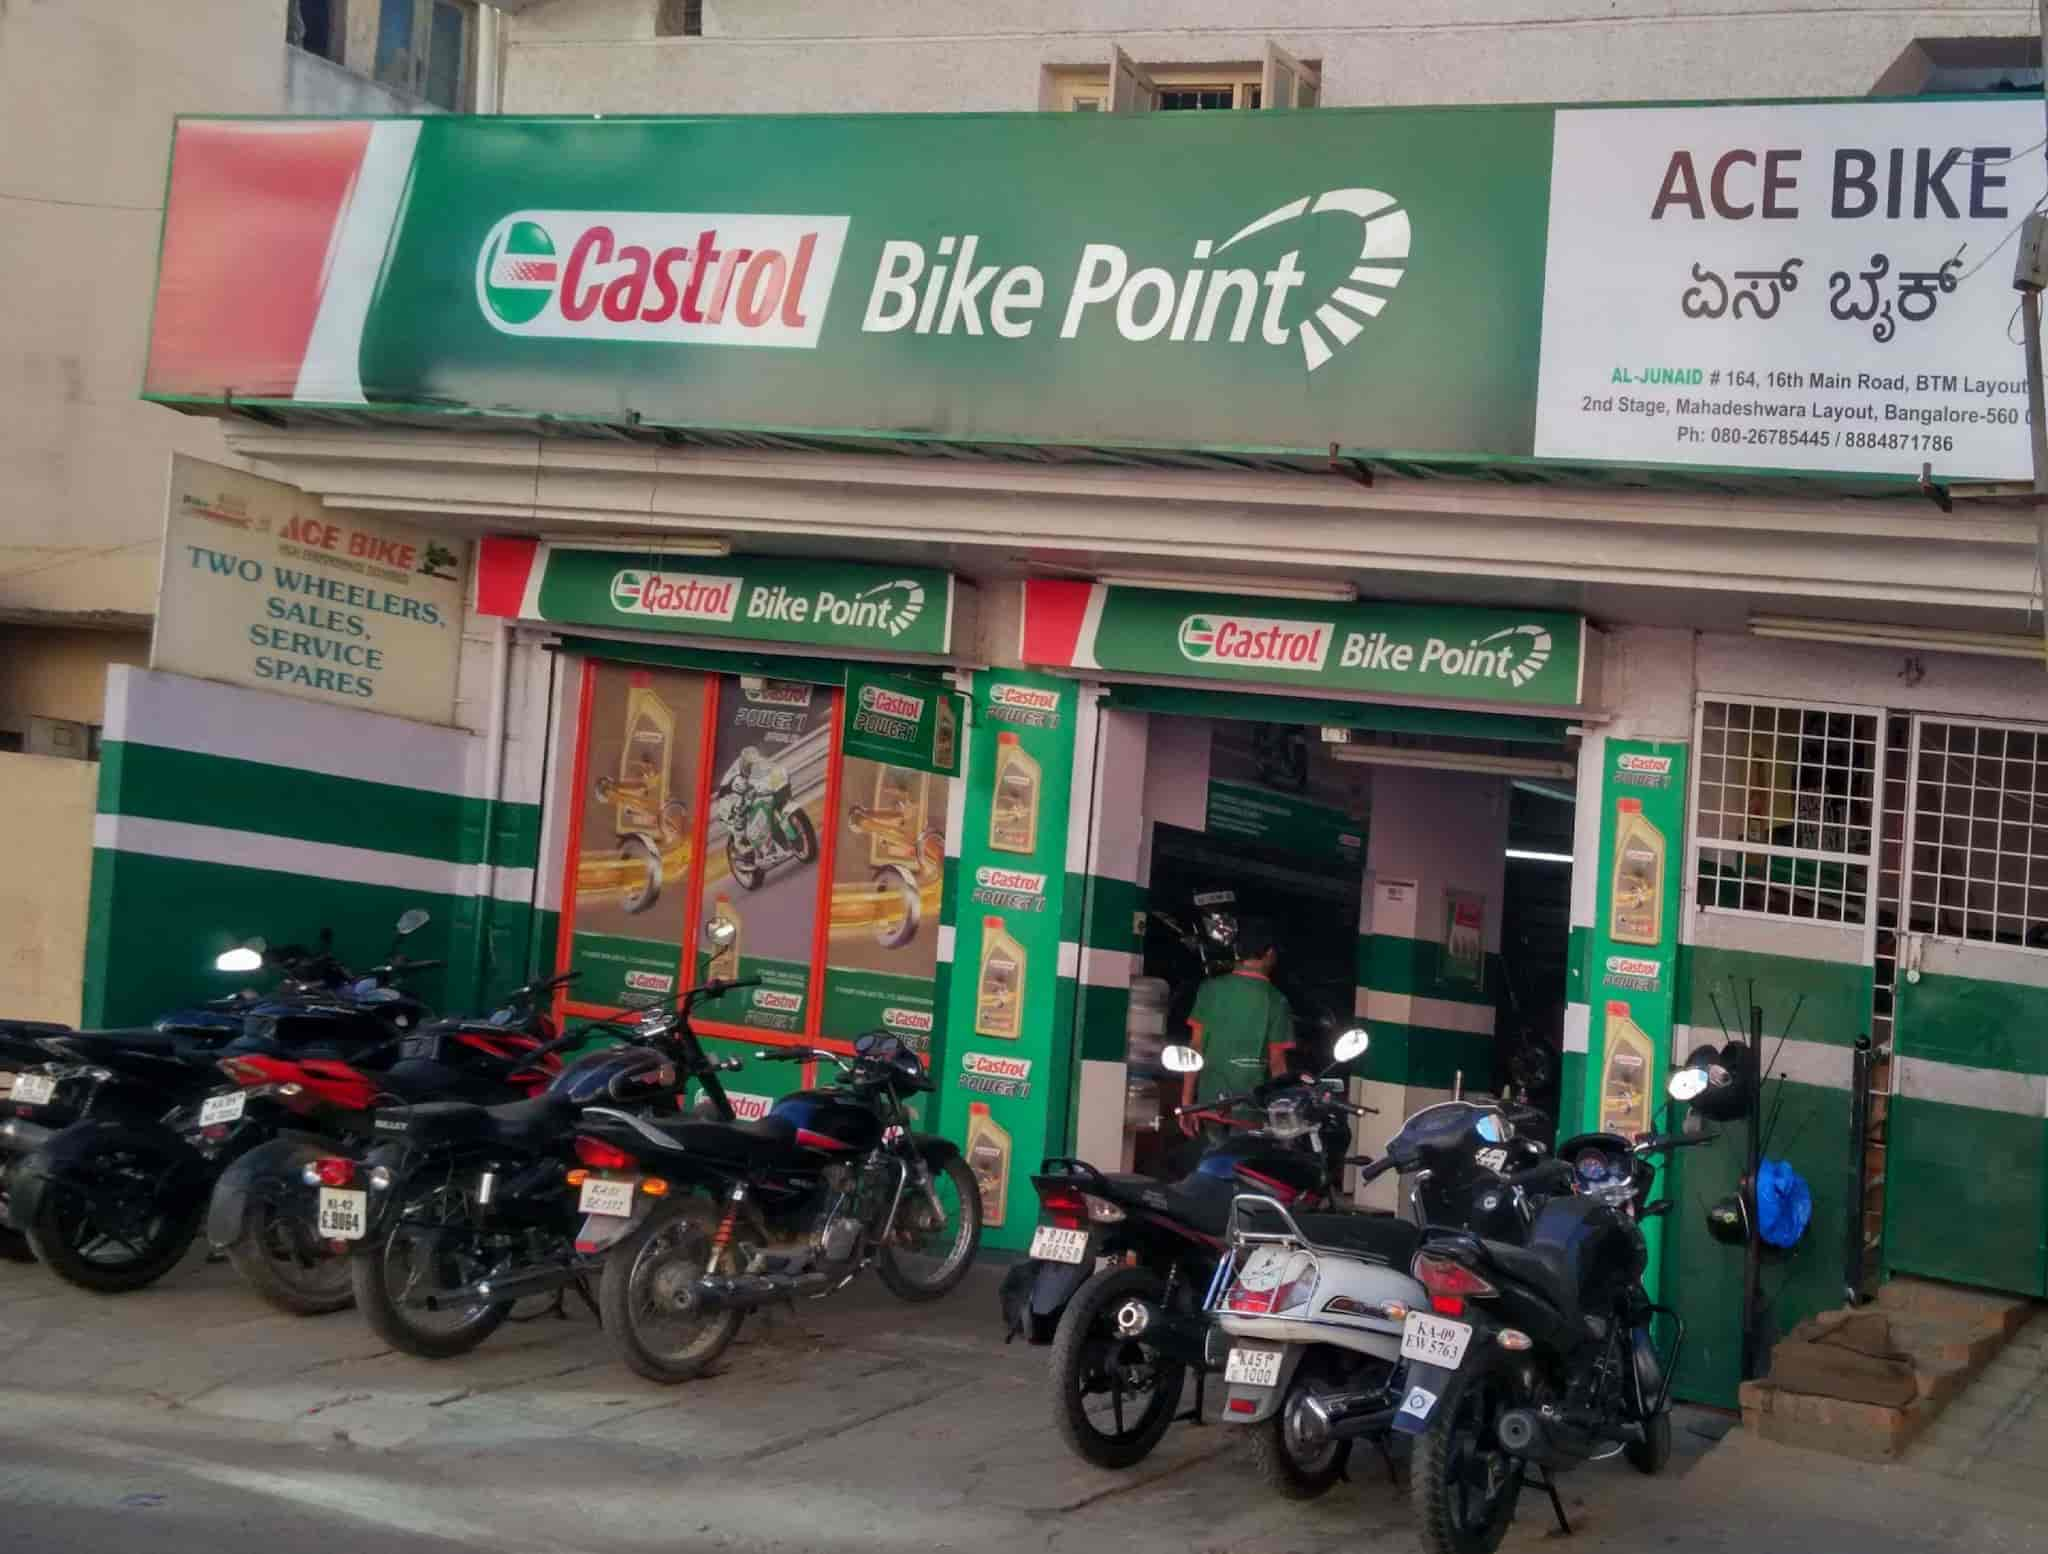 Ace Bike Btm Layout 2nd Stage Motorcycle Dealers In Bangalore Justdial